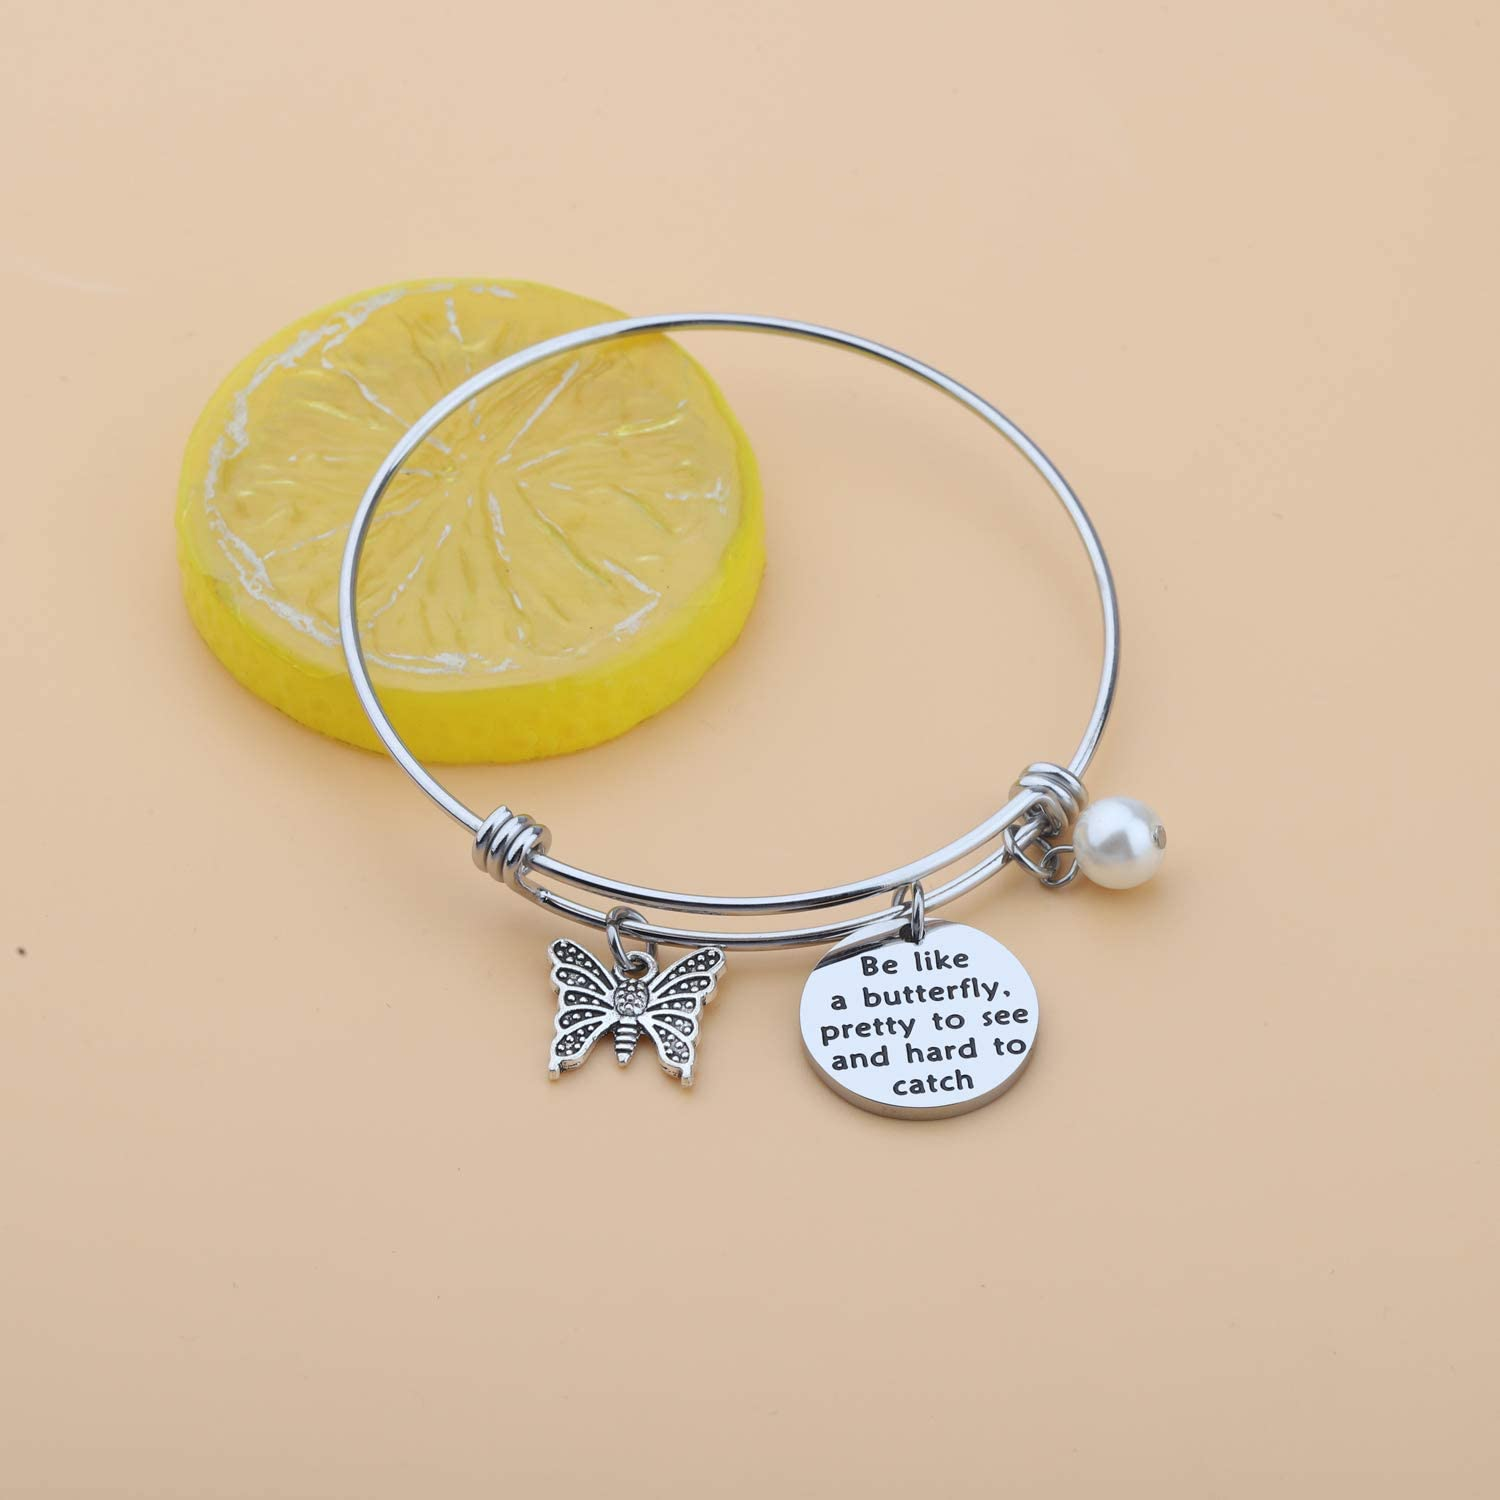 HOLLP Butterfly Charm Bracelet Butterfly Friend Encouragement Gifts Bracelet Be Like A Butterfly Pretty to See and Hard to Catch Jewelry